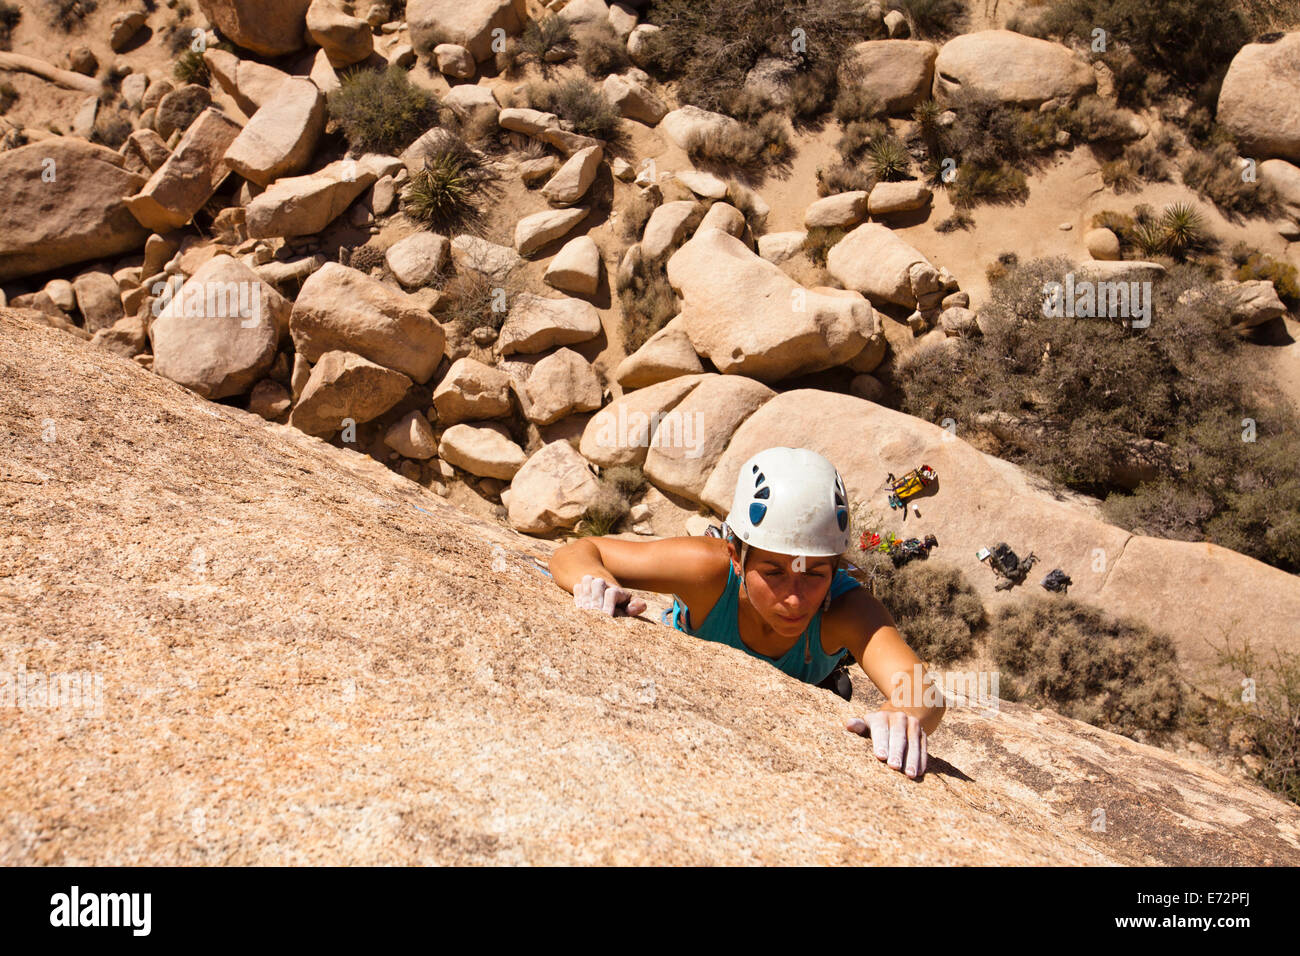 A female climber searches for handholds while finishing the traverse on Sidewinder (5.10b) in Joshua Tree National - Stock Image